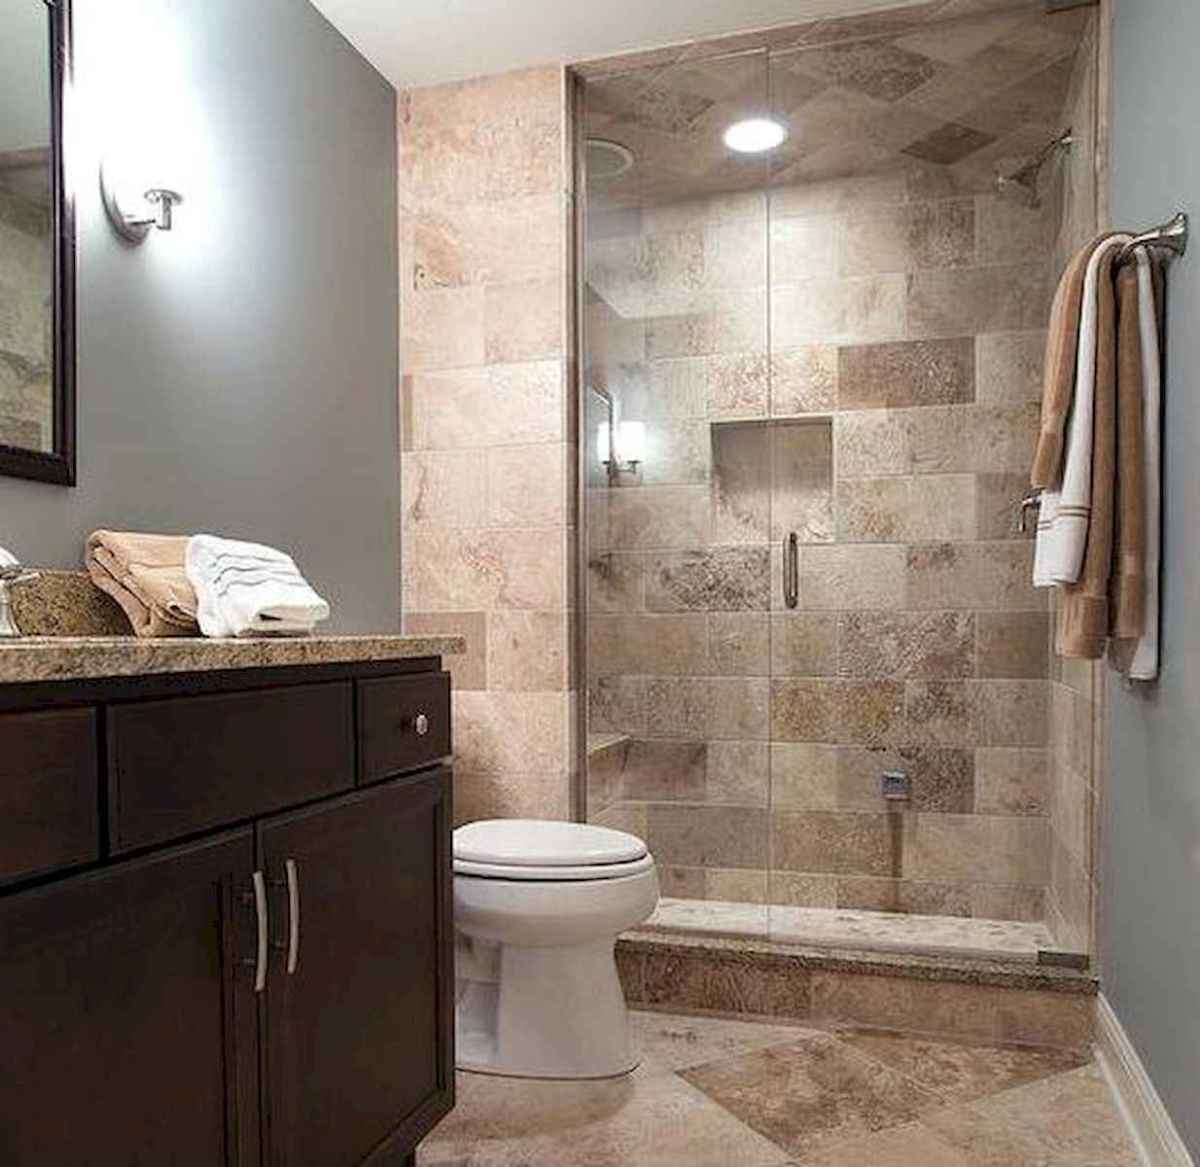 50 small guest bathroom ideas decorations and remodel (28)